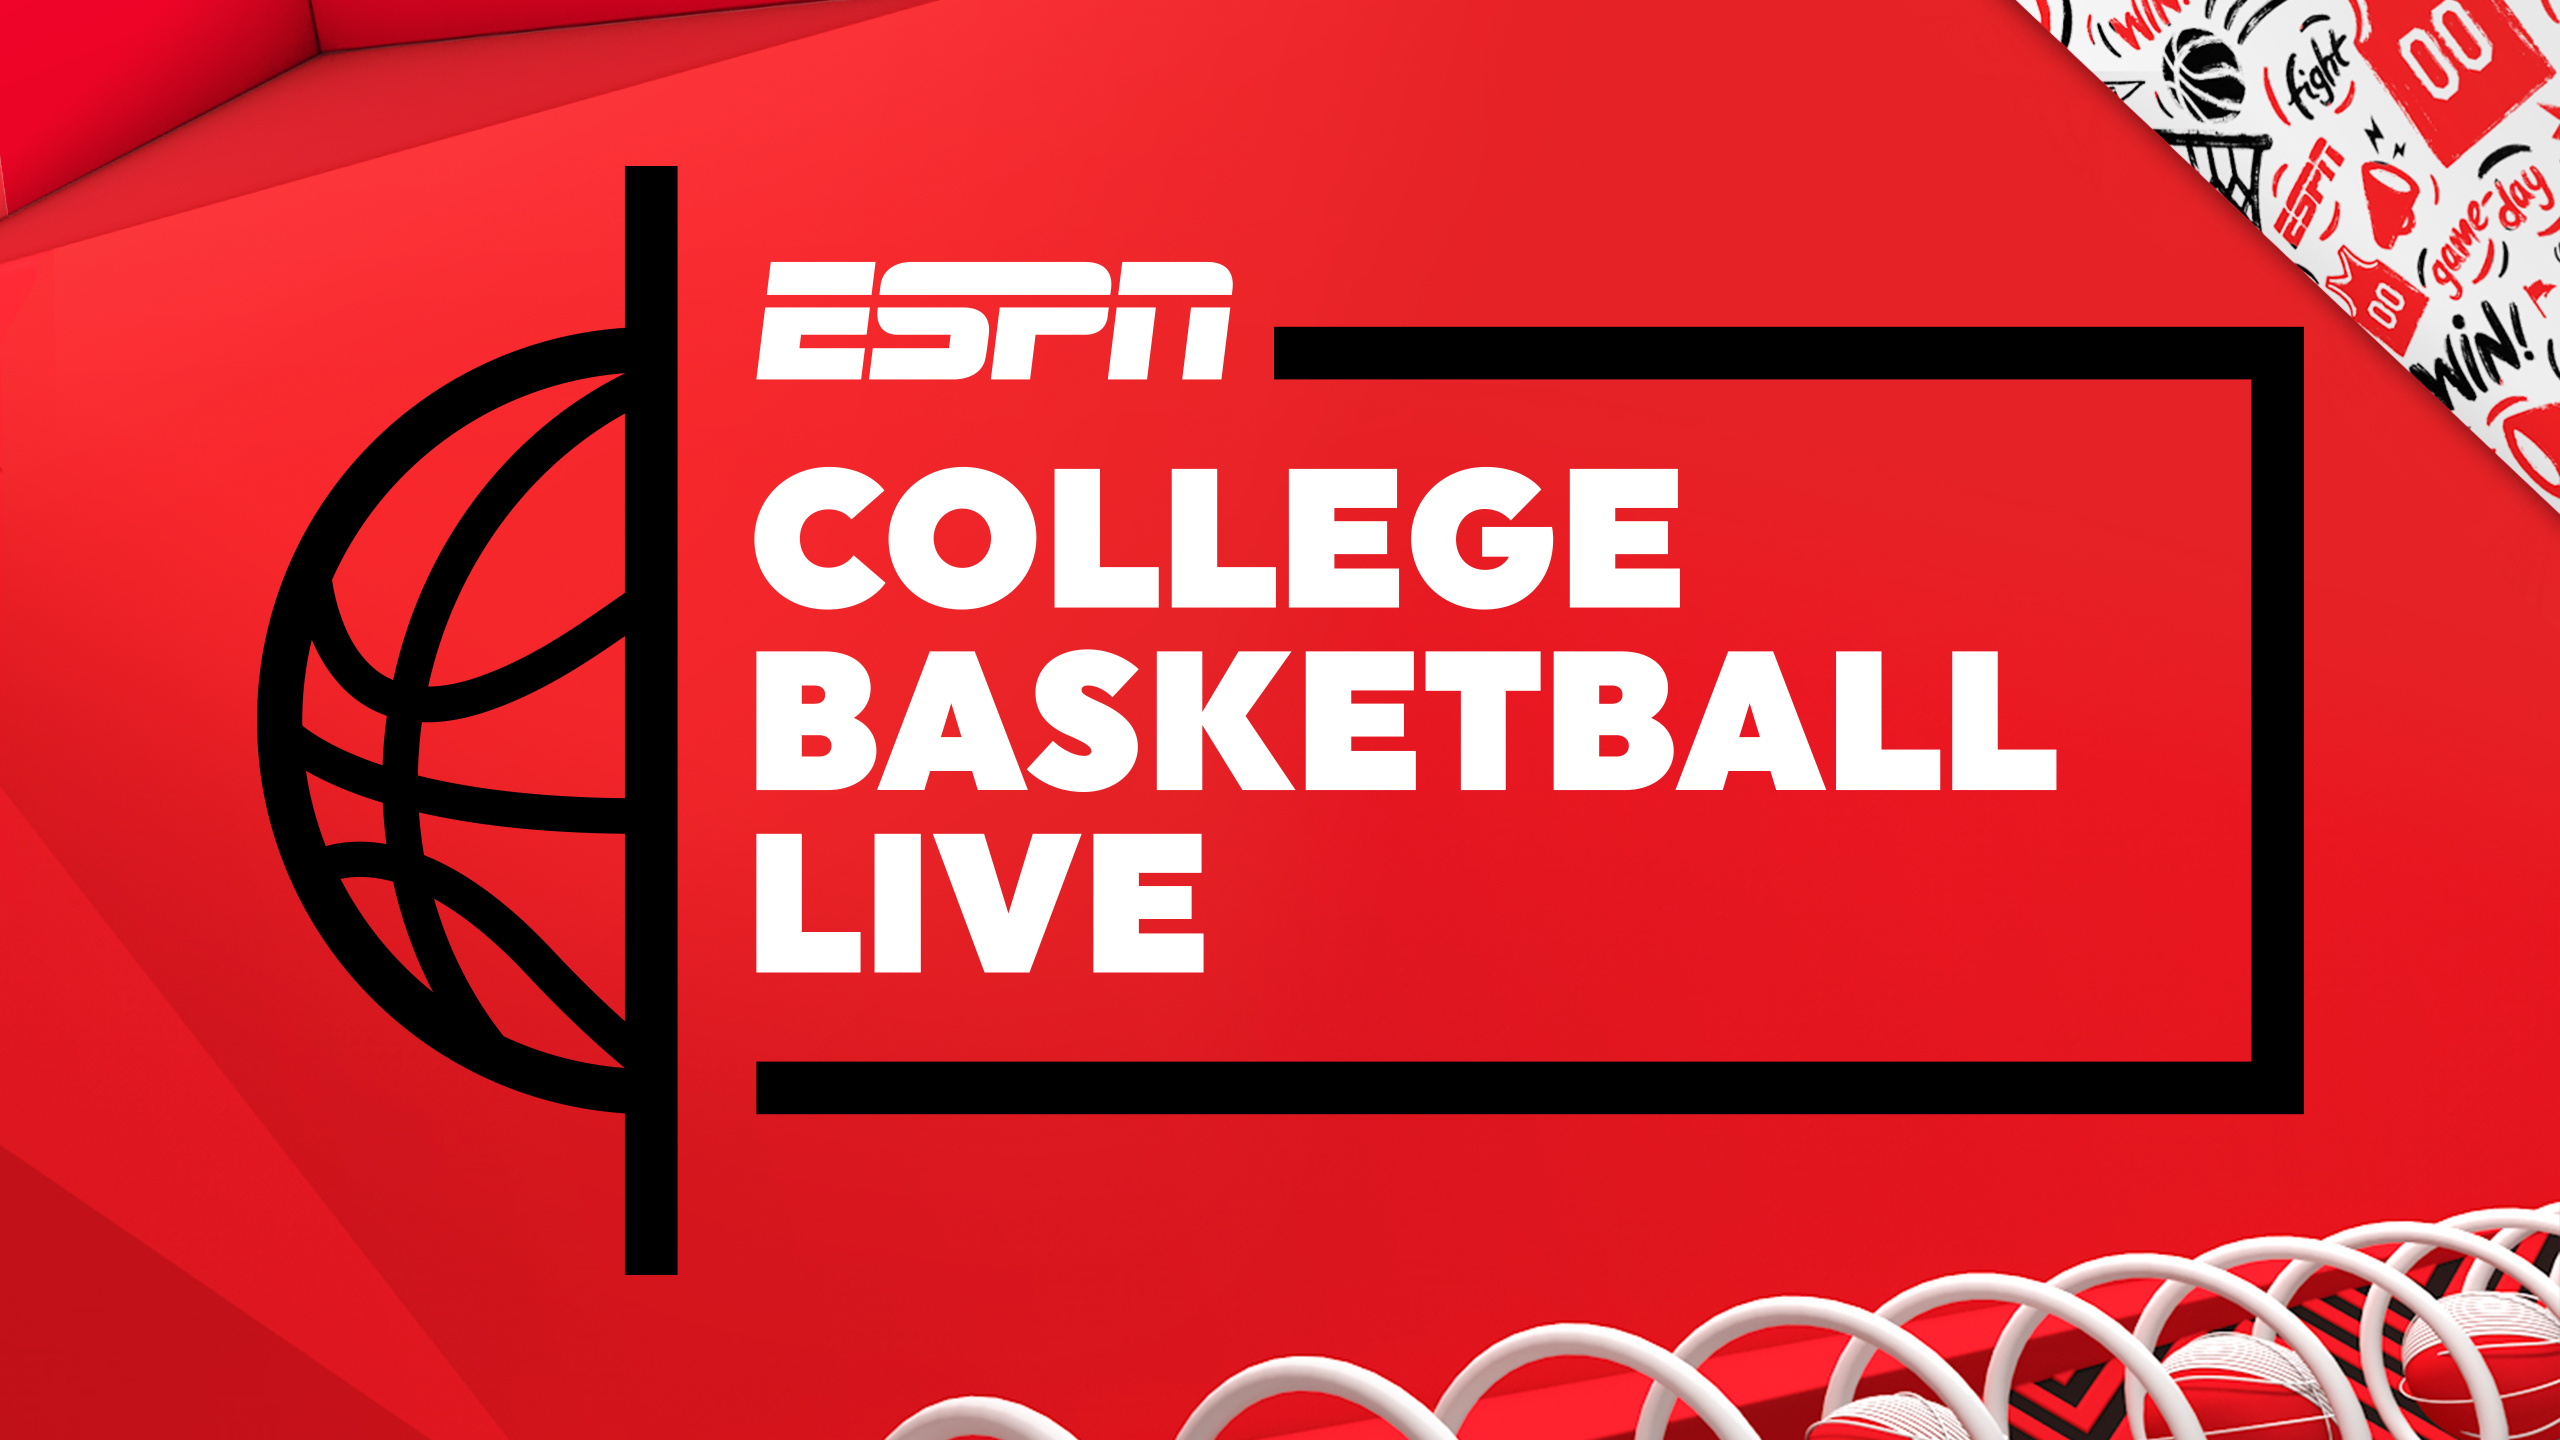 College Basketball Live Scoreboard presented by ZipRecruiter